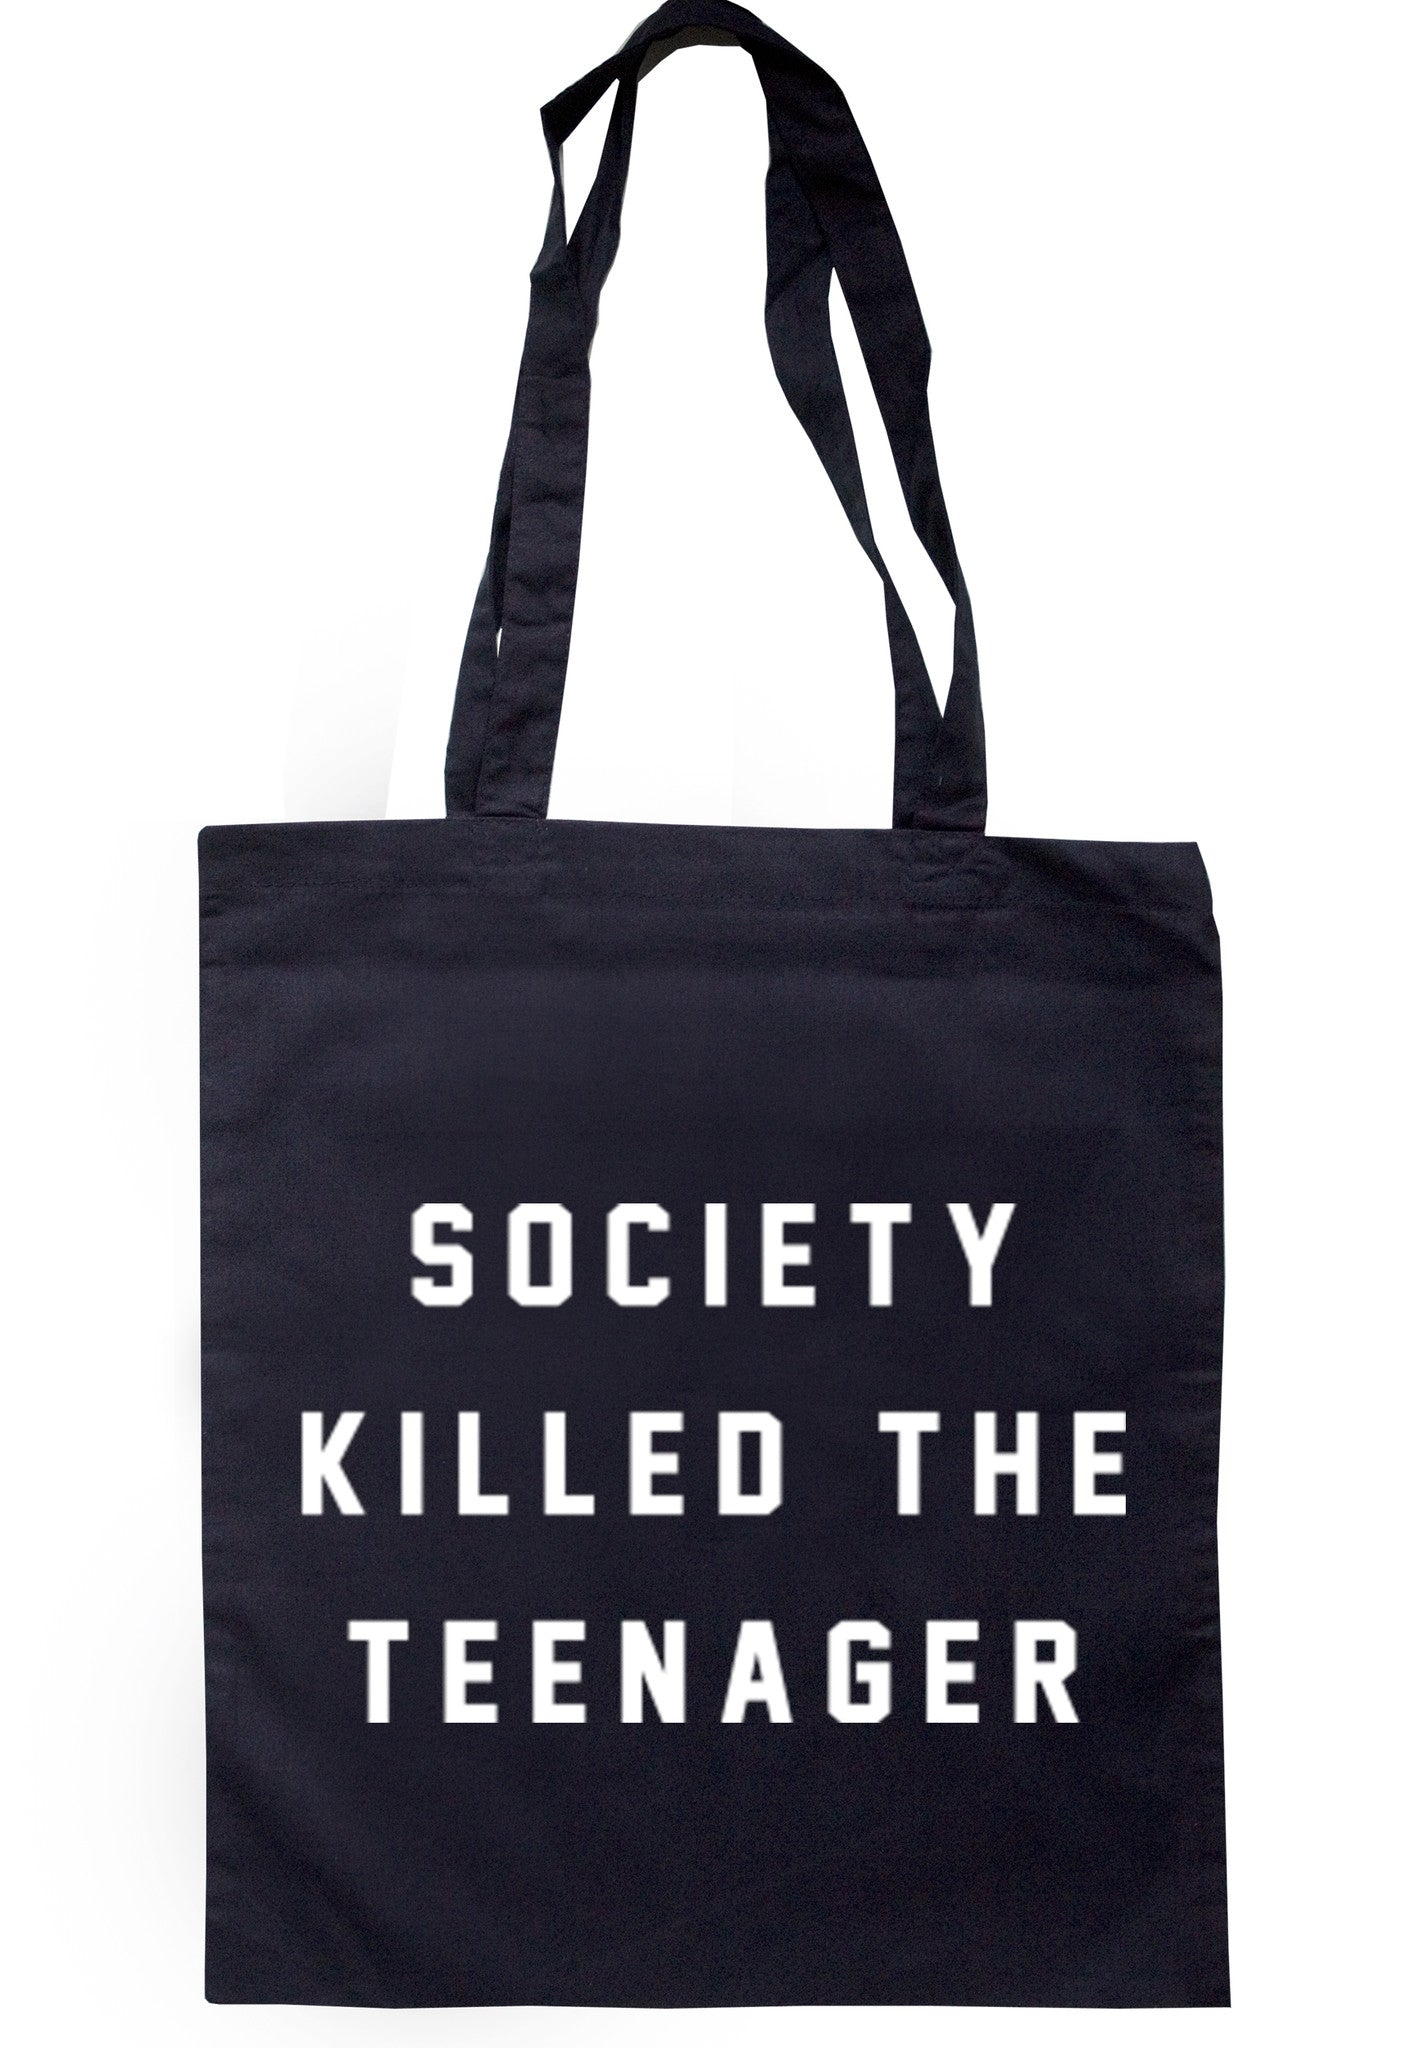 Society Killed The Teenager Tote Bag TB0050 - Illustrated Identity Ltd.